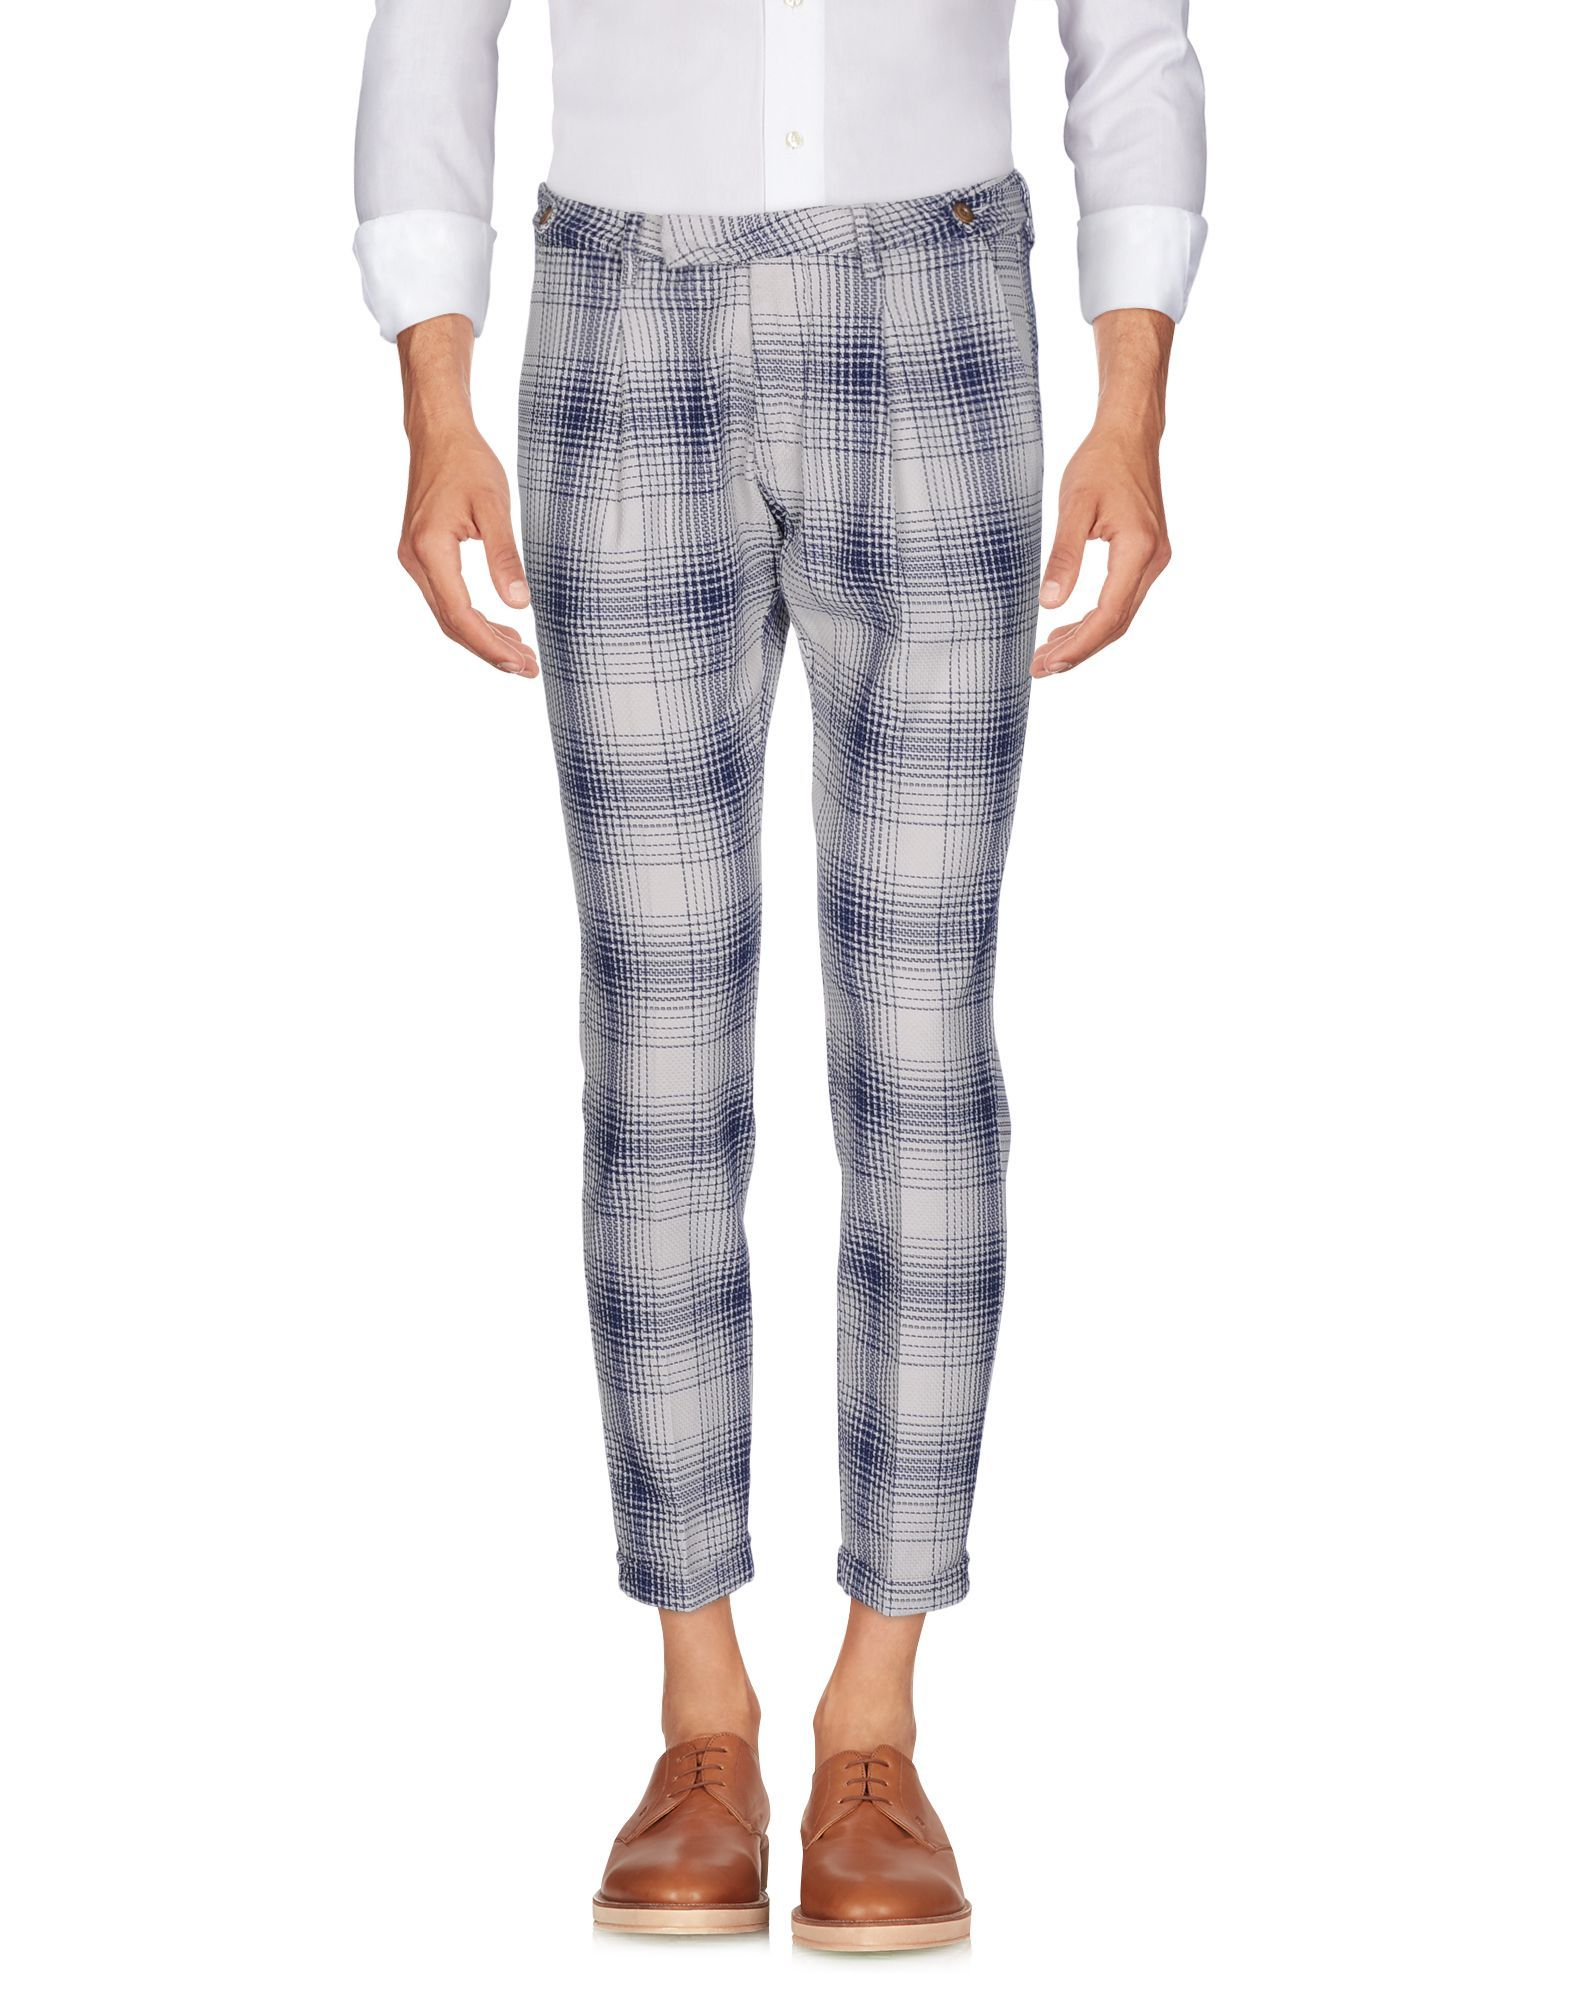 Michael Coal Blue Tweed Cotton Tapered Leg Chino Trousers